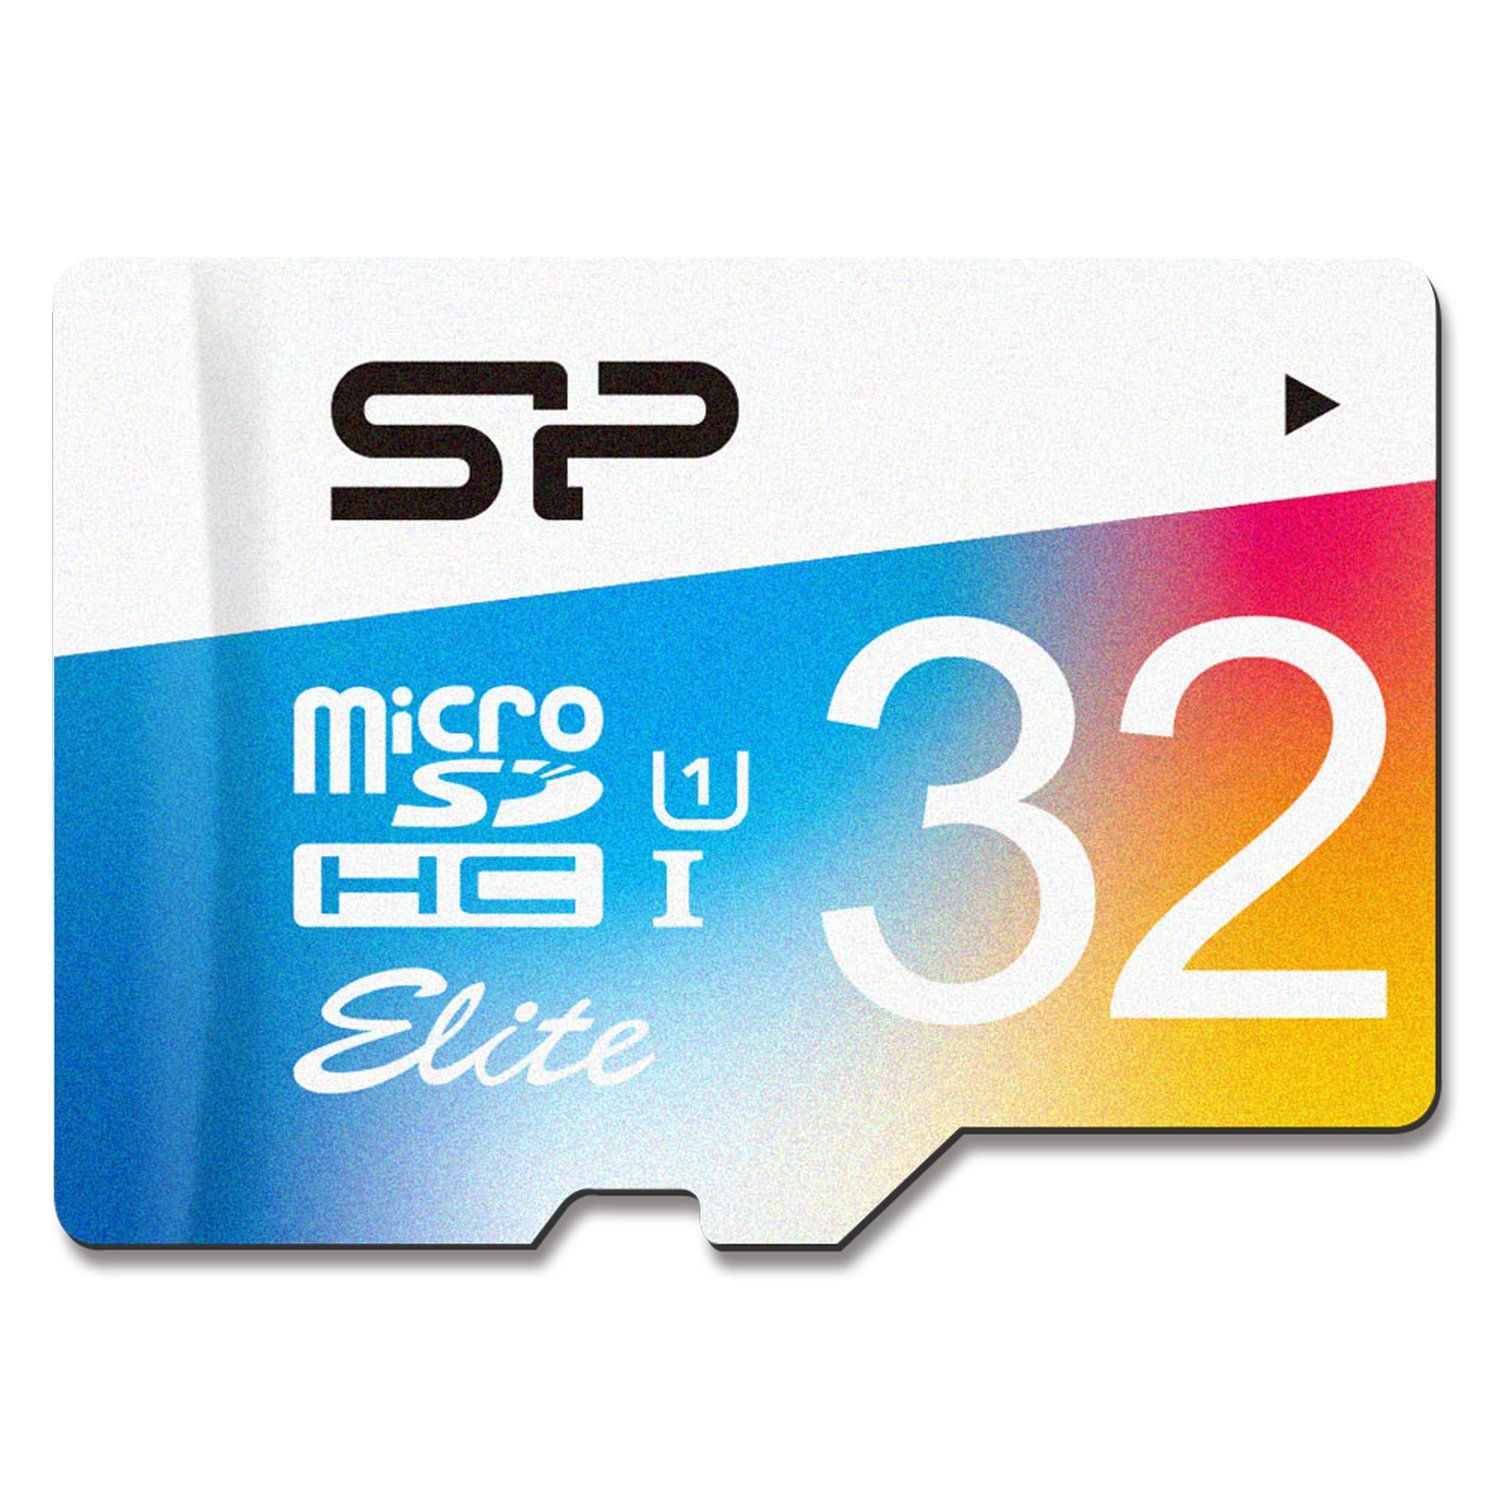 Silicon Power 32GB MicroSDHC UHS-1 Memory Card - with Adapter (SP032GBSTHBU1V20UR)